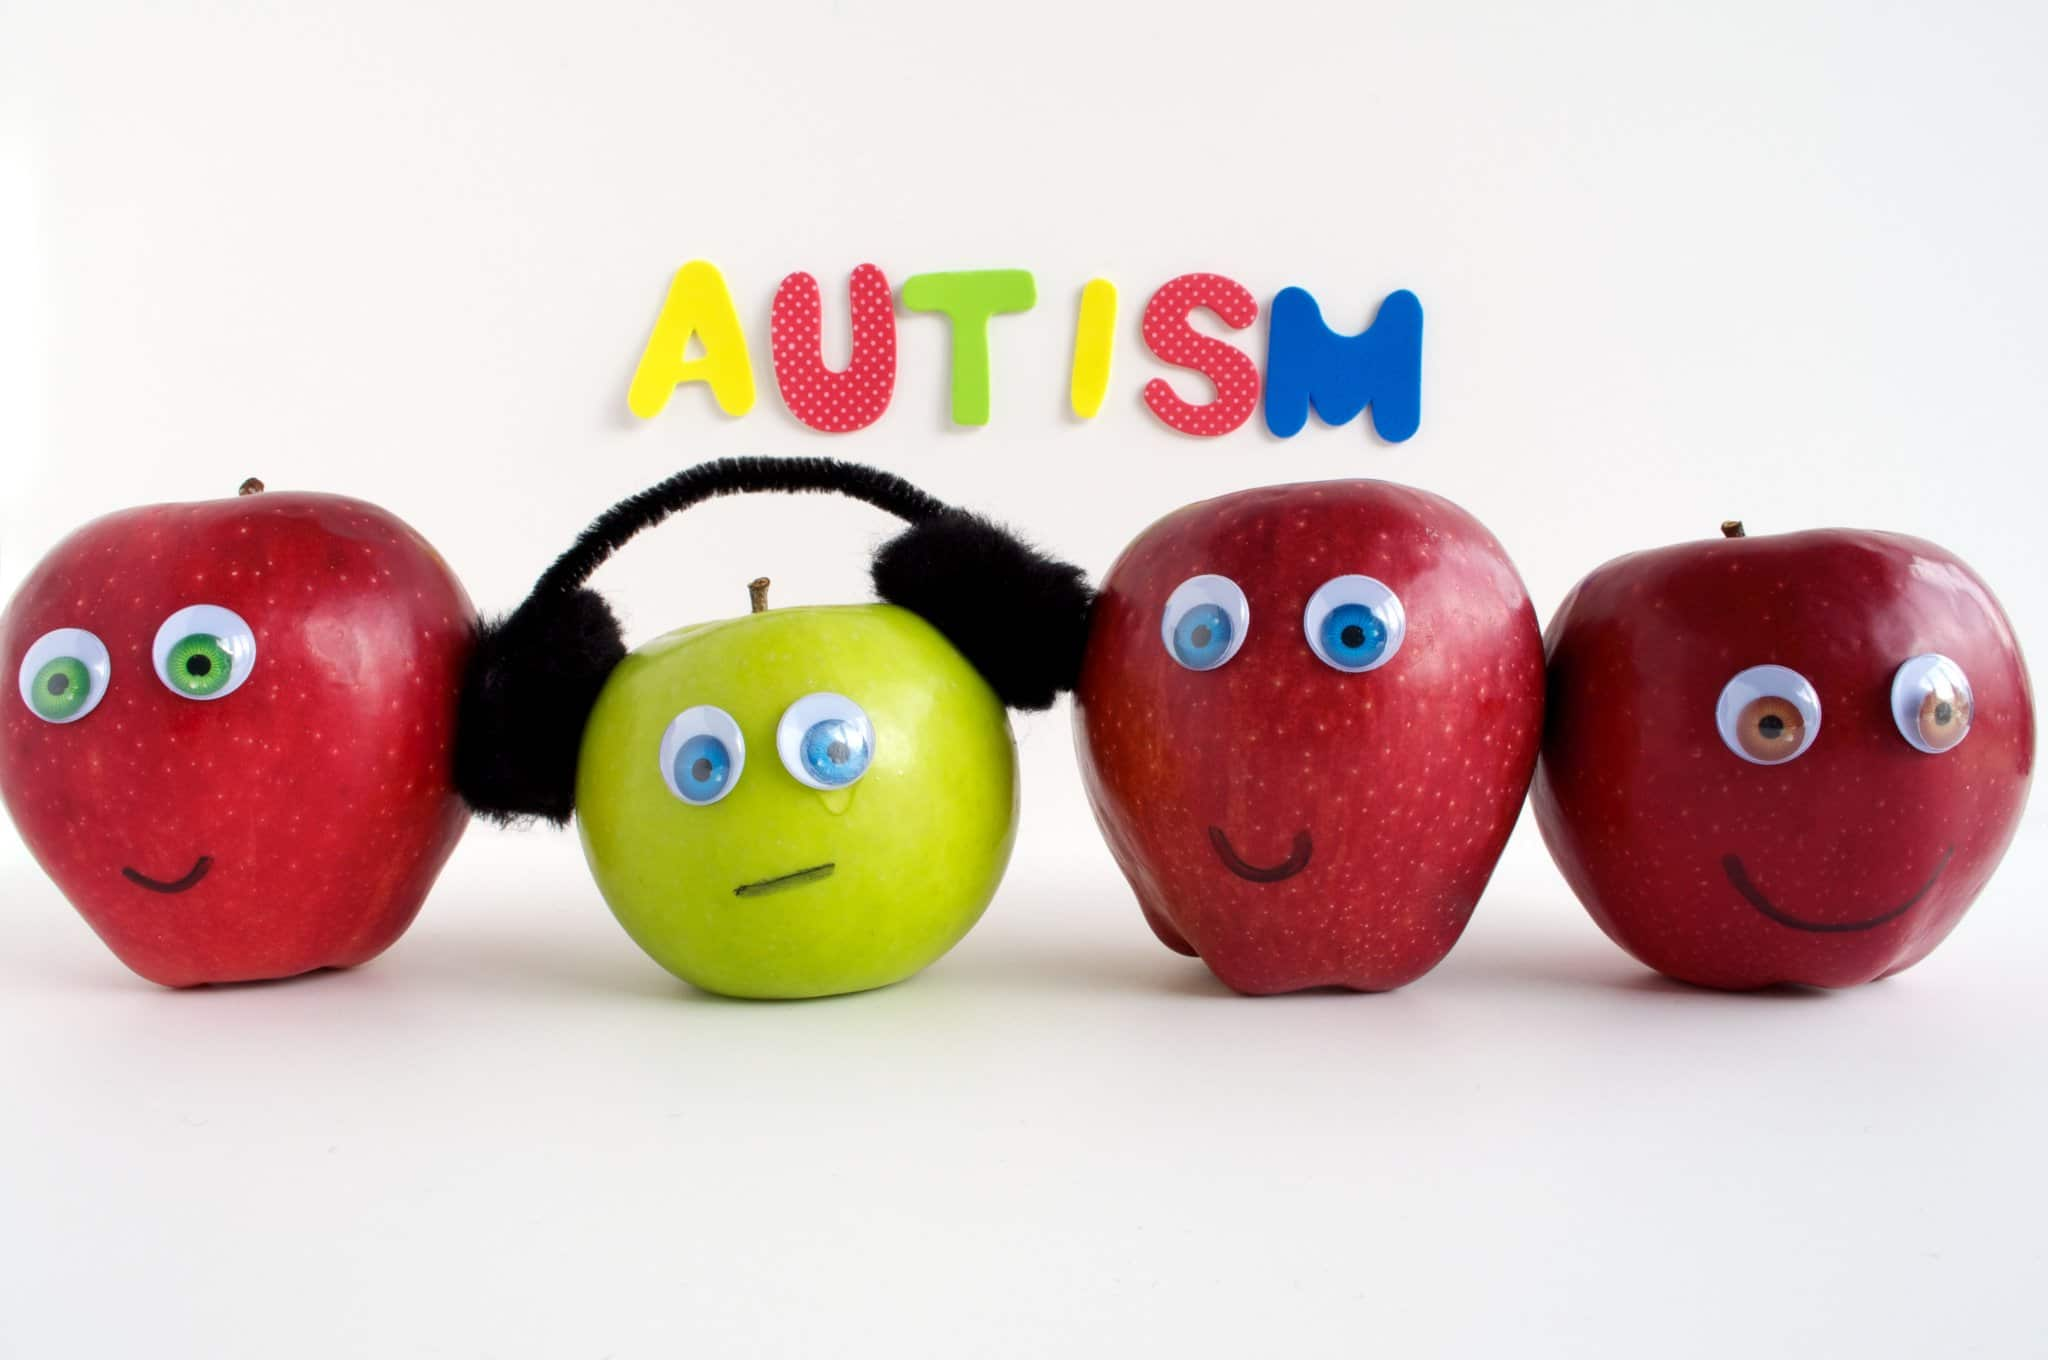 Myths and misbeliefs related to Autism Spectrum Disorder (ASD) :